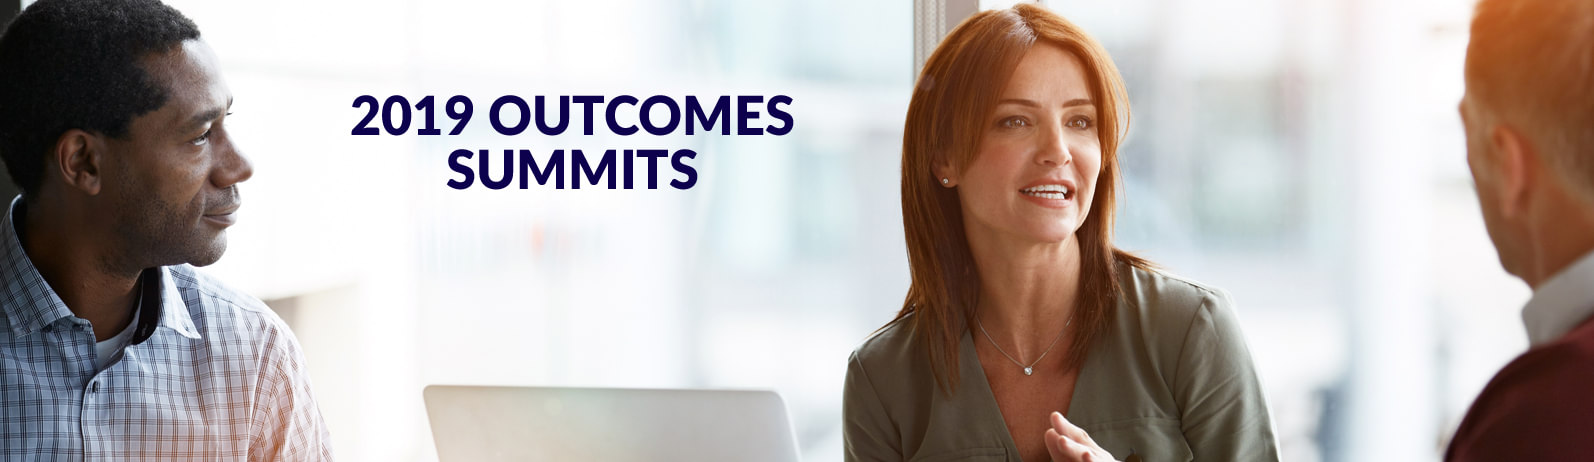 Outcomes Summit Agenda